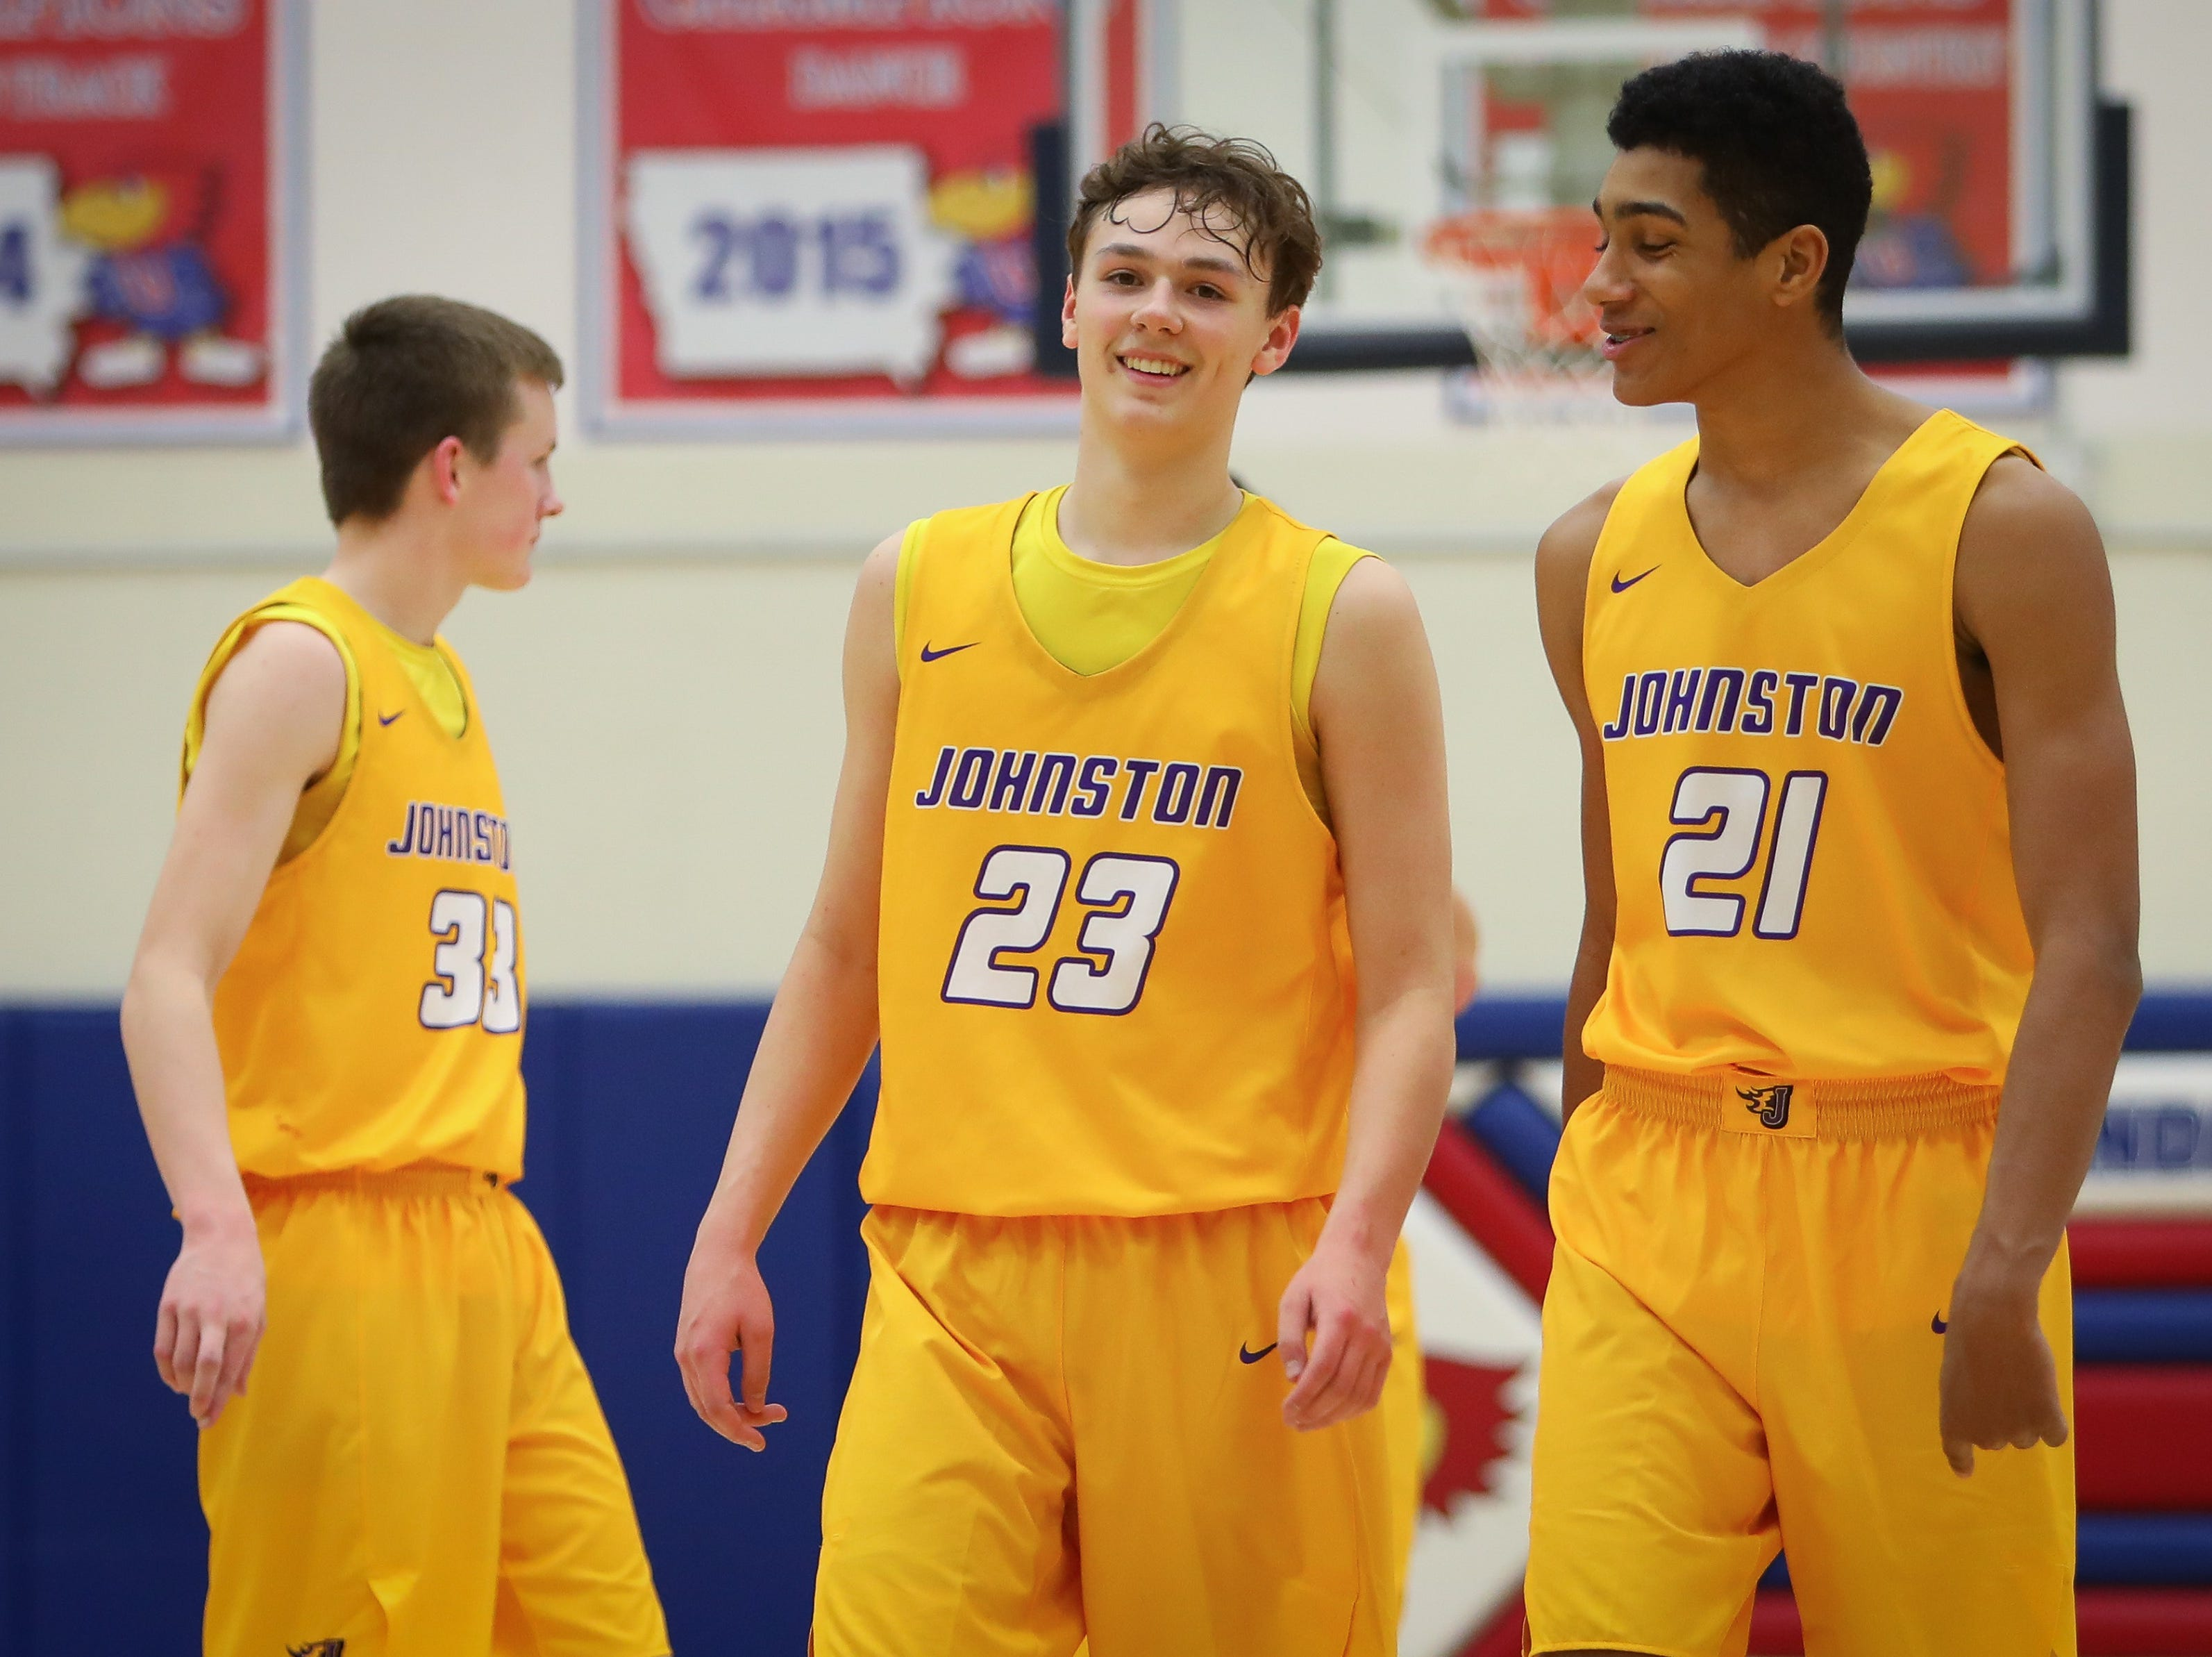 Johnston sophomore Reid Grant and junior Brees Proctor celebrate after the Dragons defeated the Urbandale J-Hawks, 59-53, in a boys high school basketball game at Urbandale High School on Dec. 18, 2018 in Urbandale, Iowa.